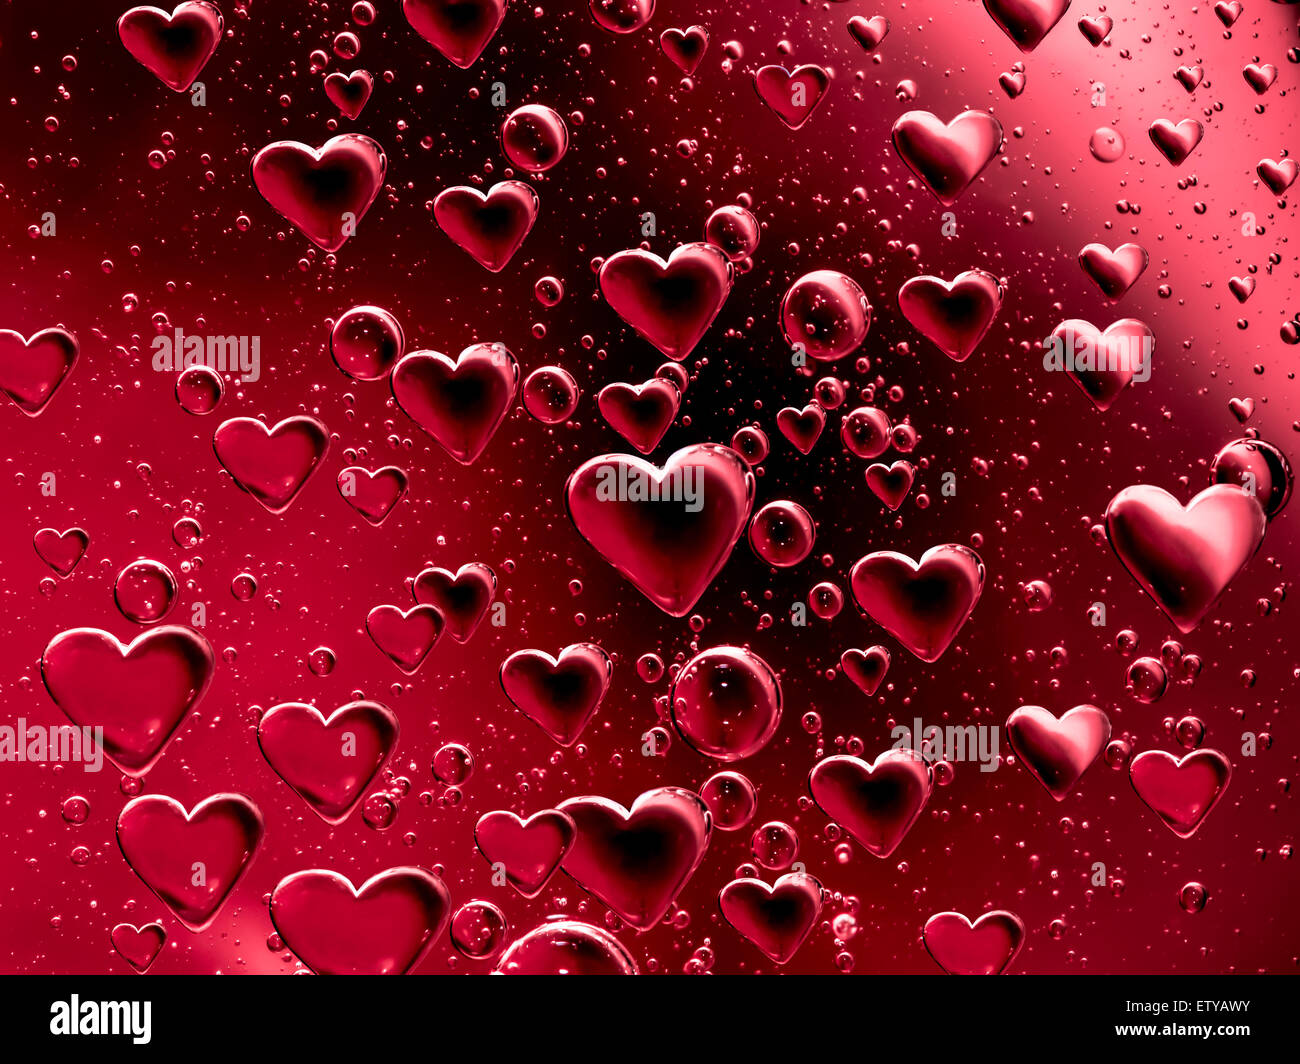 Floating heart shaped bubbles - Stock Image